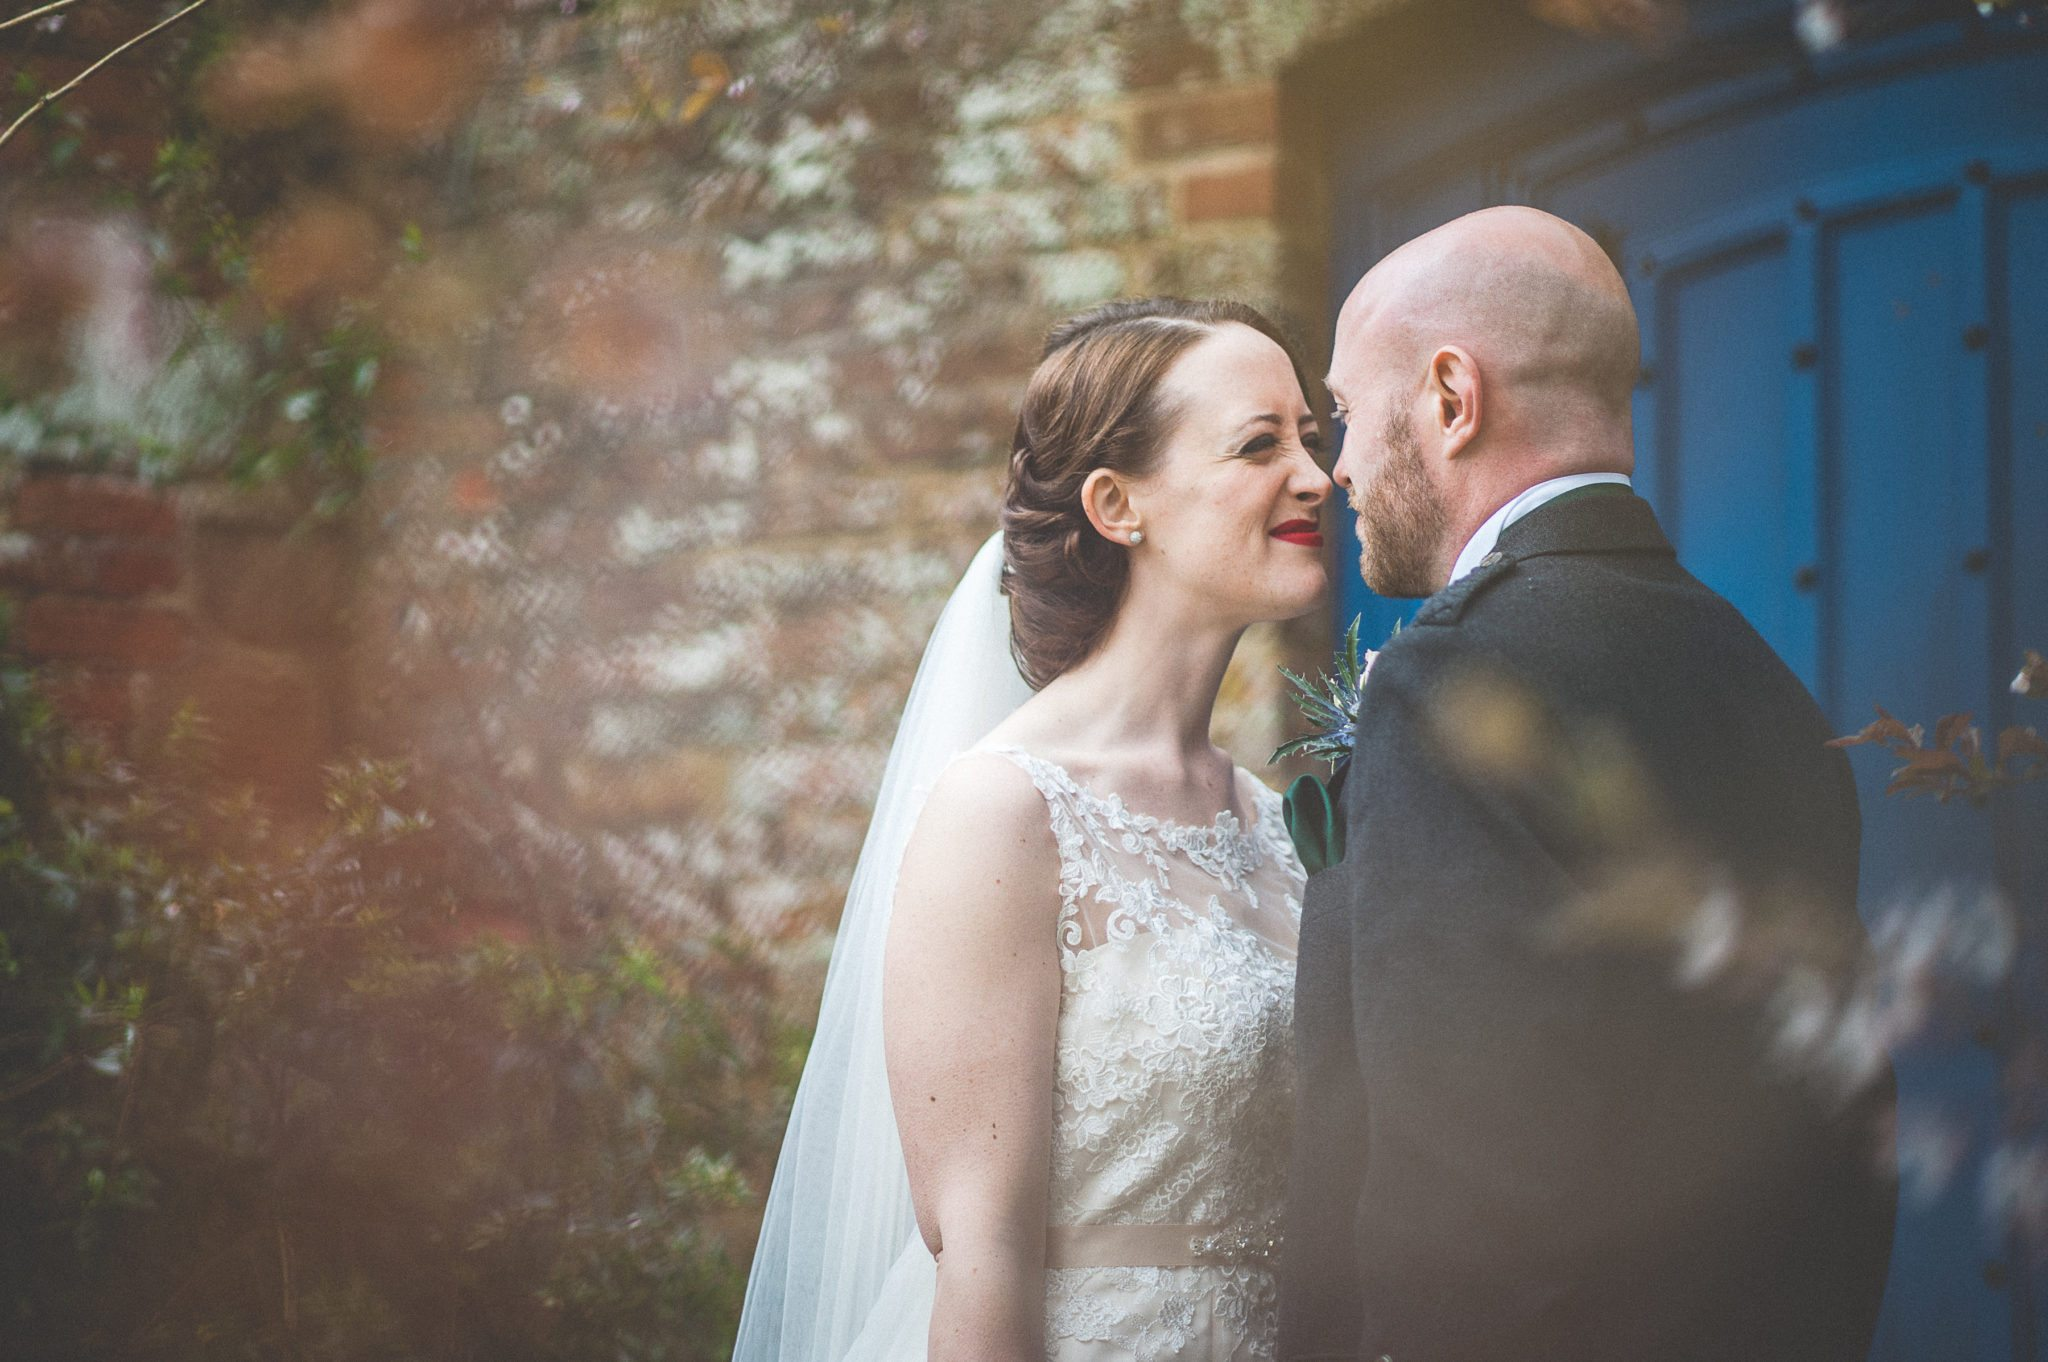 Bride and Groom smile at each other in front of a blue door at Farnham Castles Bishops Palace